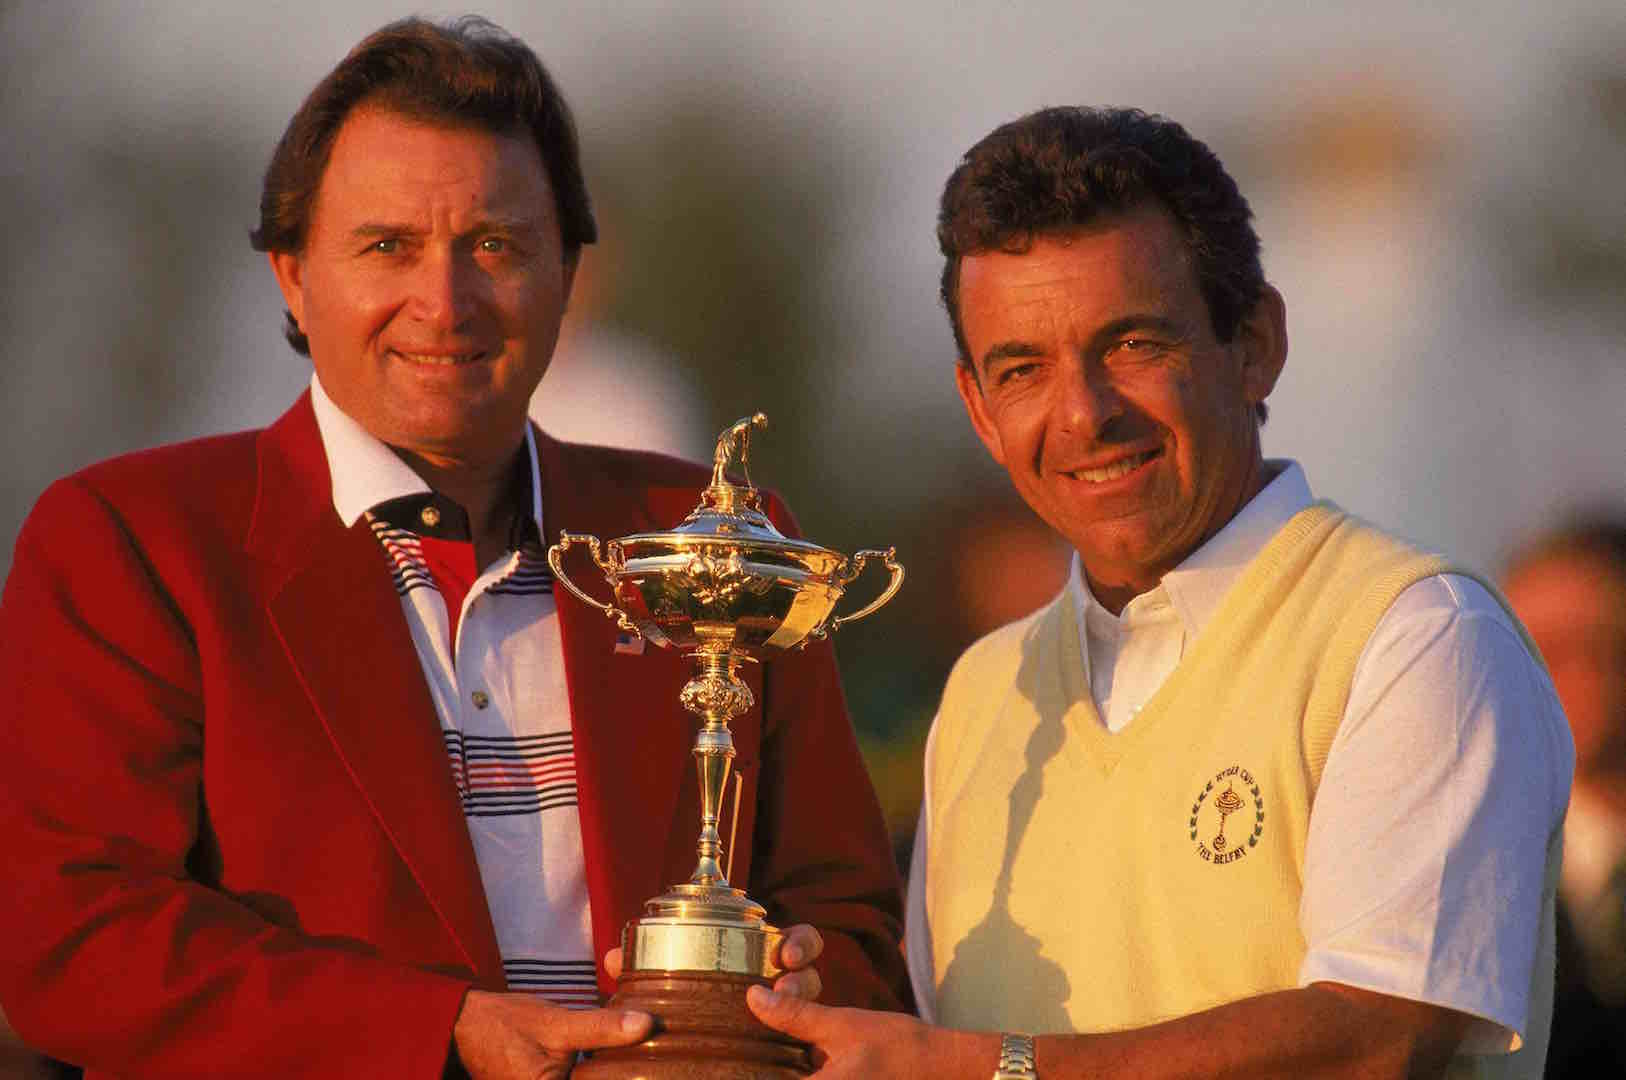 Ryder Cup legends return to The Belfry